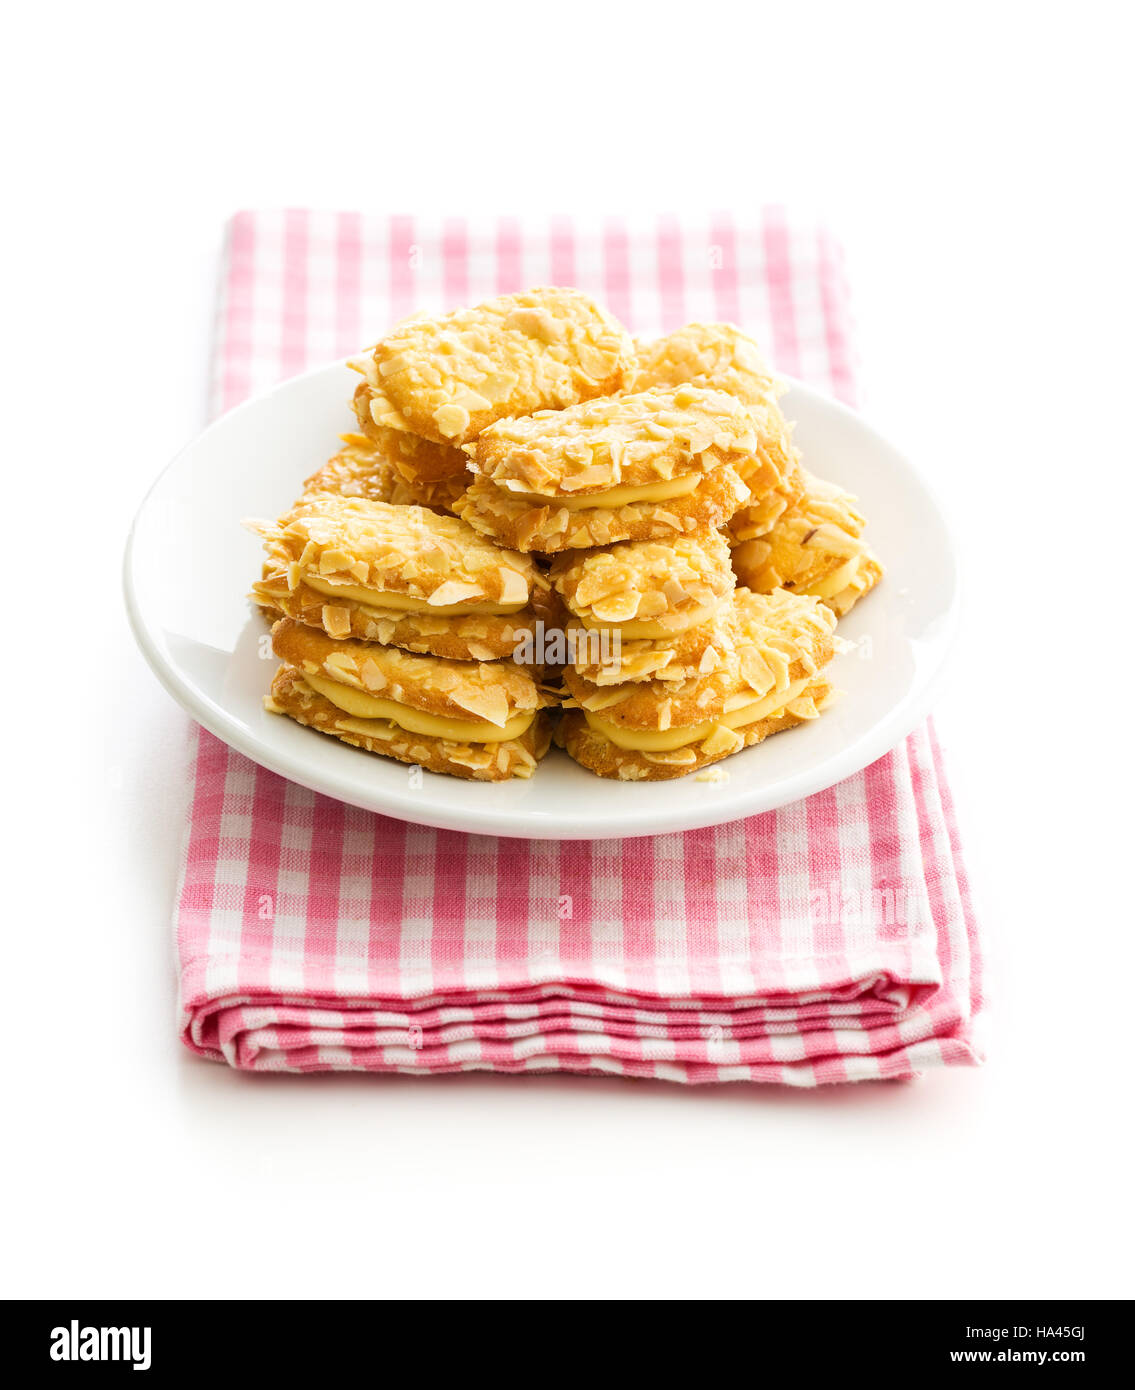 Sweet almond cookies on plate isolated on white background. - Stock Image